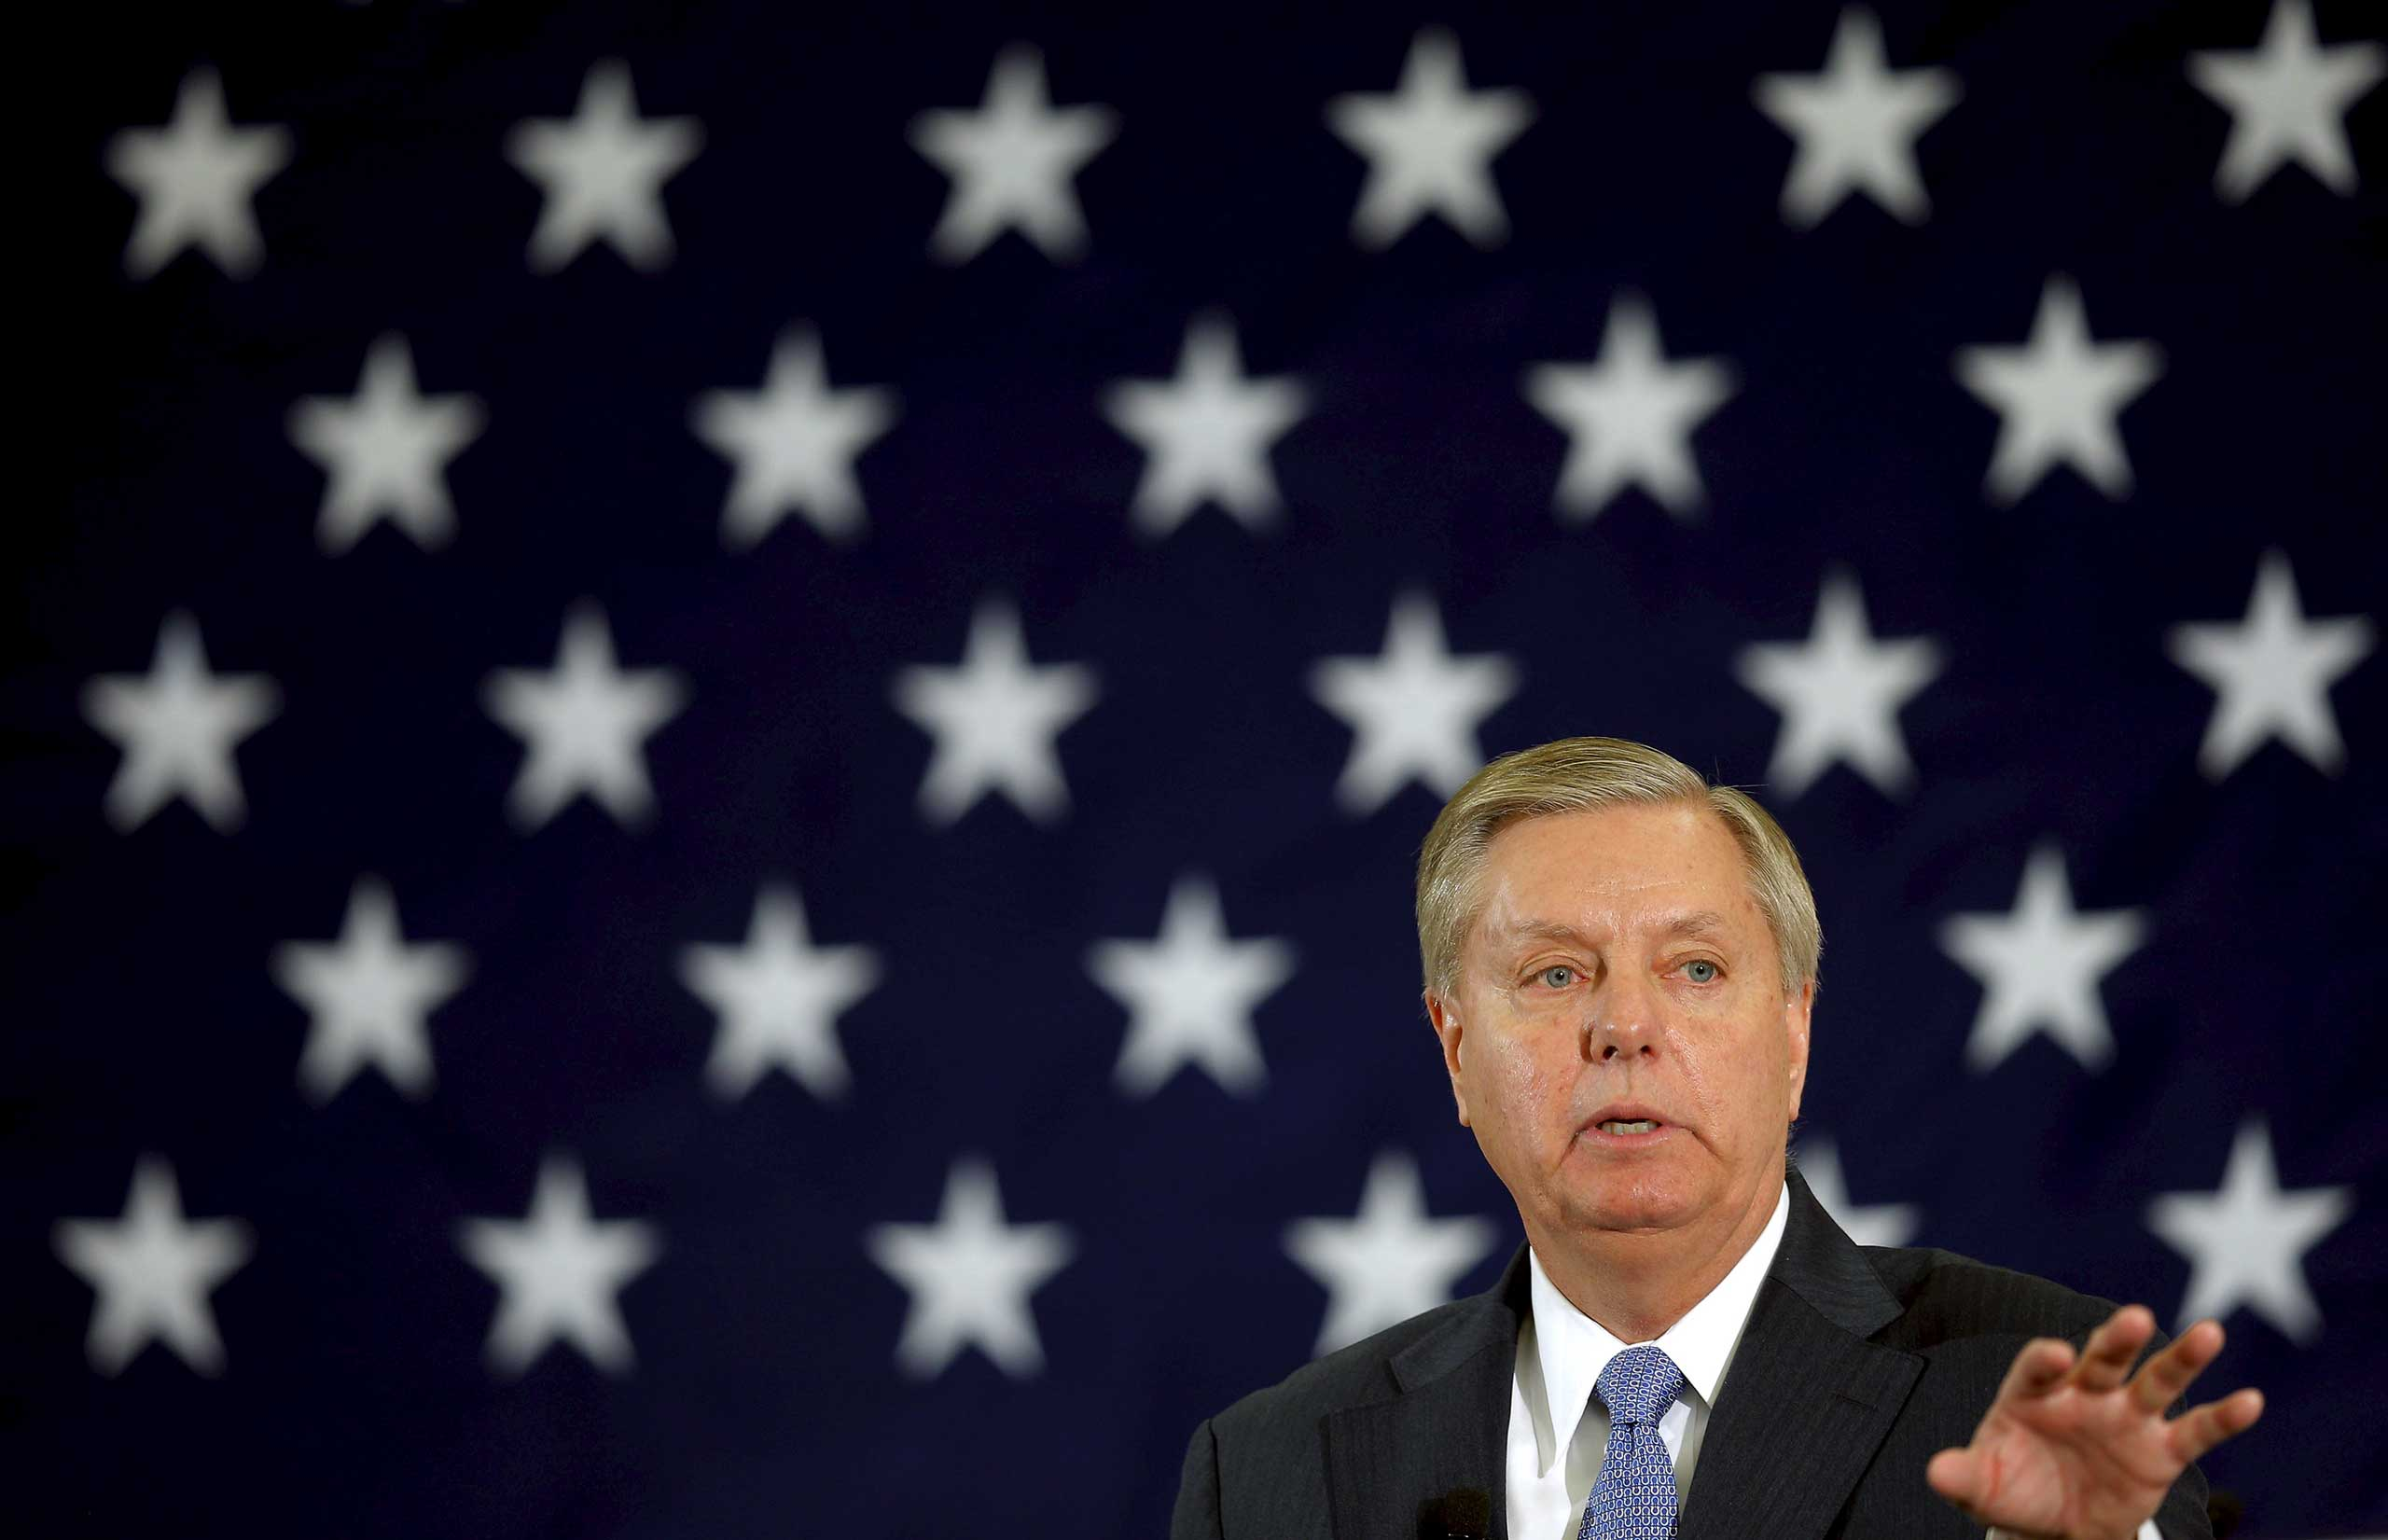 Potential Republican 2016 presidential candidate U.S. Senator Lindsey Graham (R-SC) speaks at the First in the Nation Republican Leadership Conference in Nashua, New Hampshire, April 18, 2015.